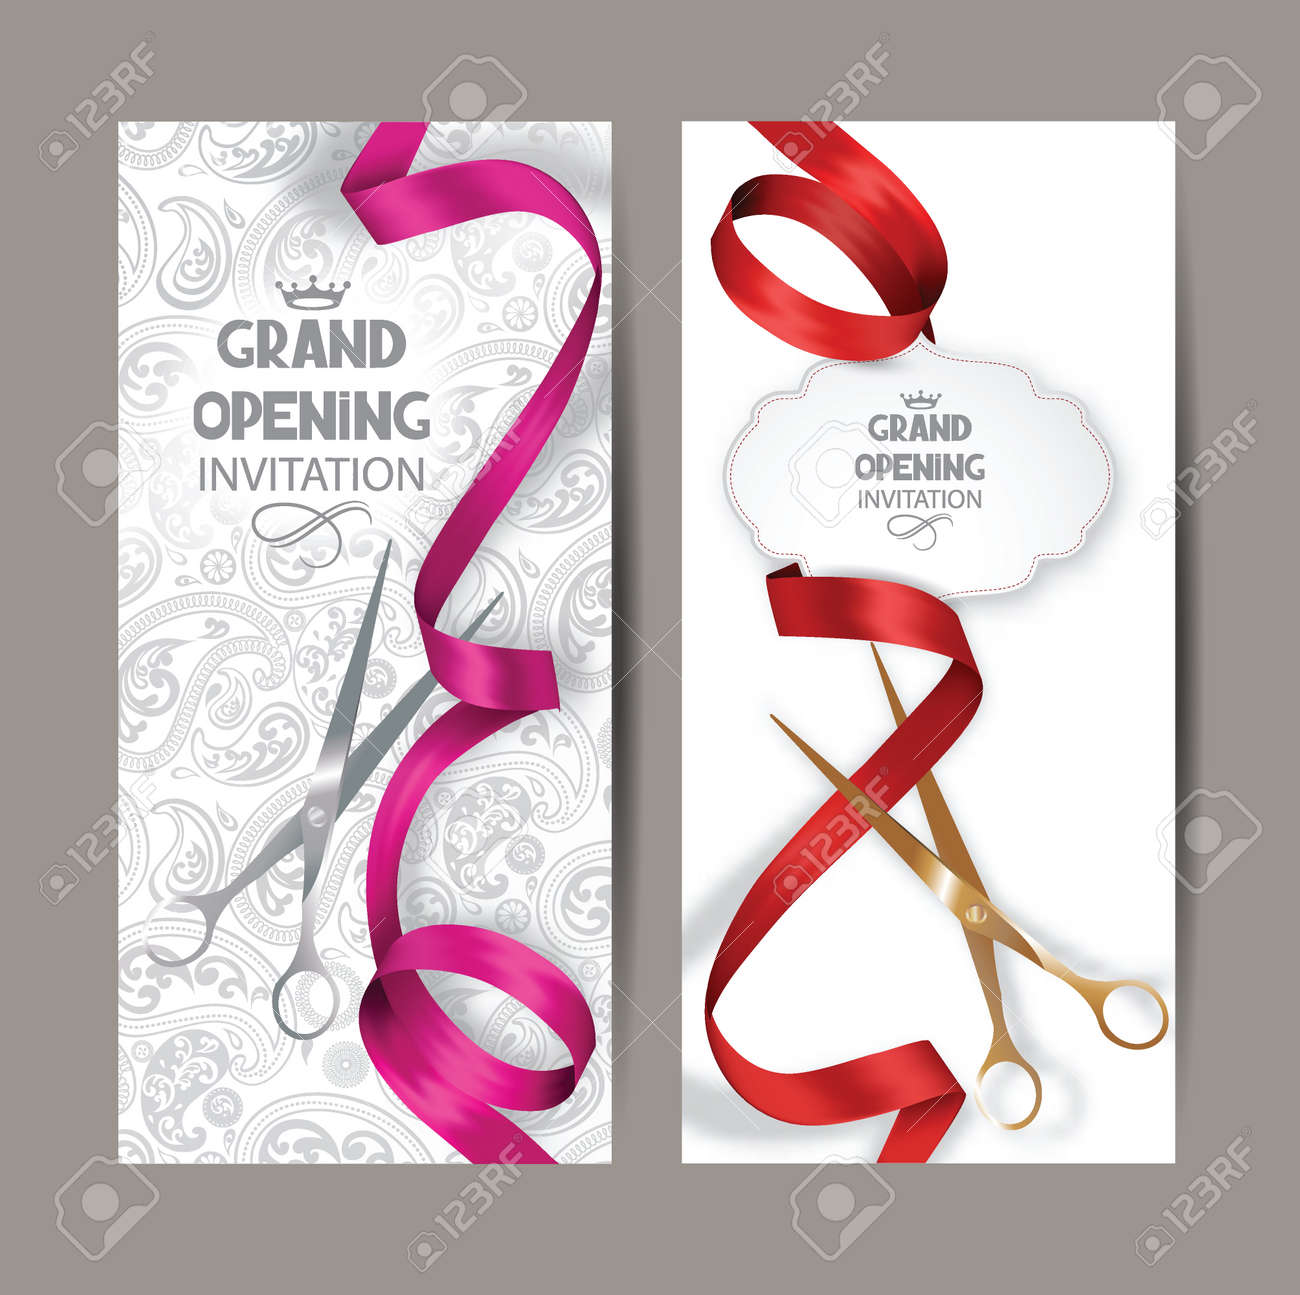 Beautiful Grand Opening Invitation Cards With Red And Pink Silk – Grand Opening Invitation Cards